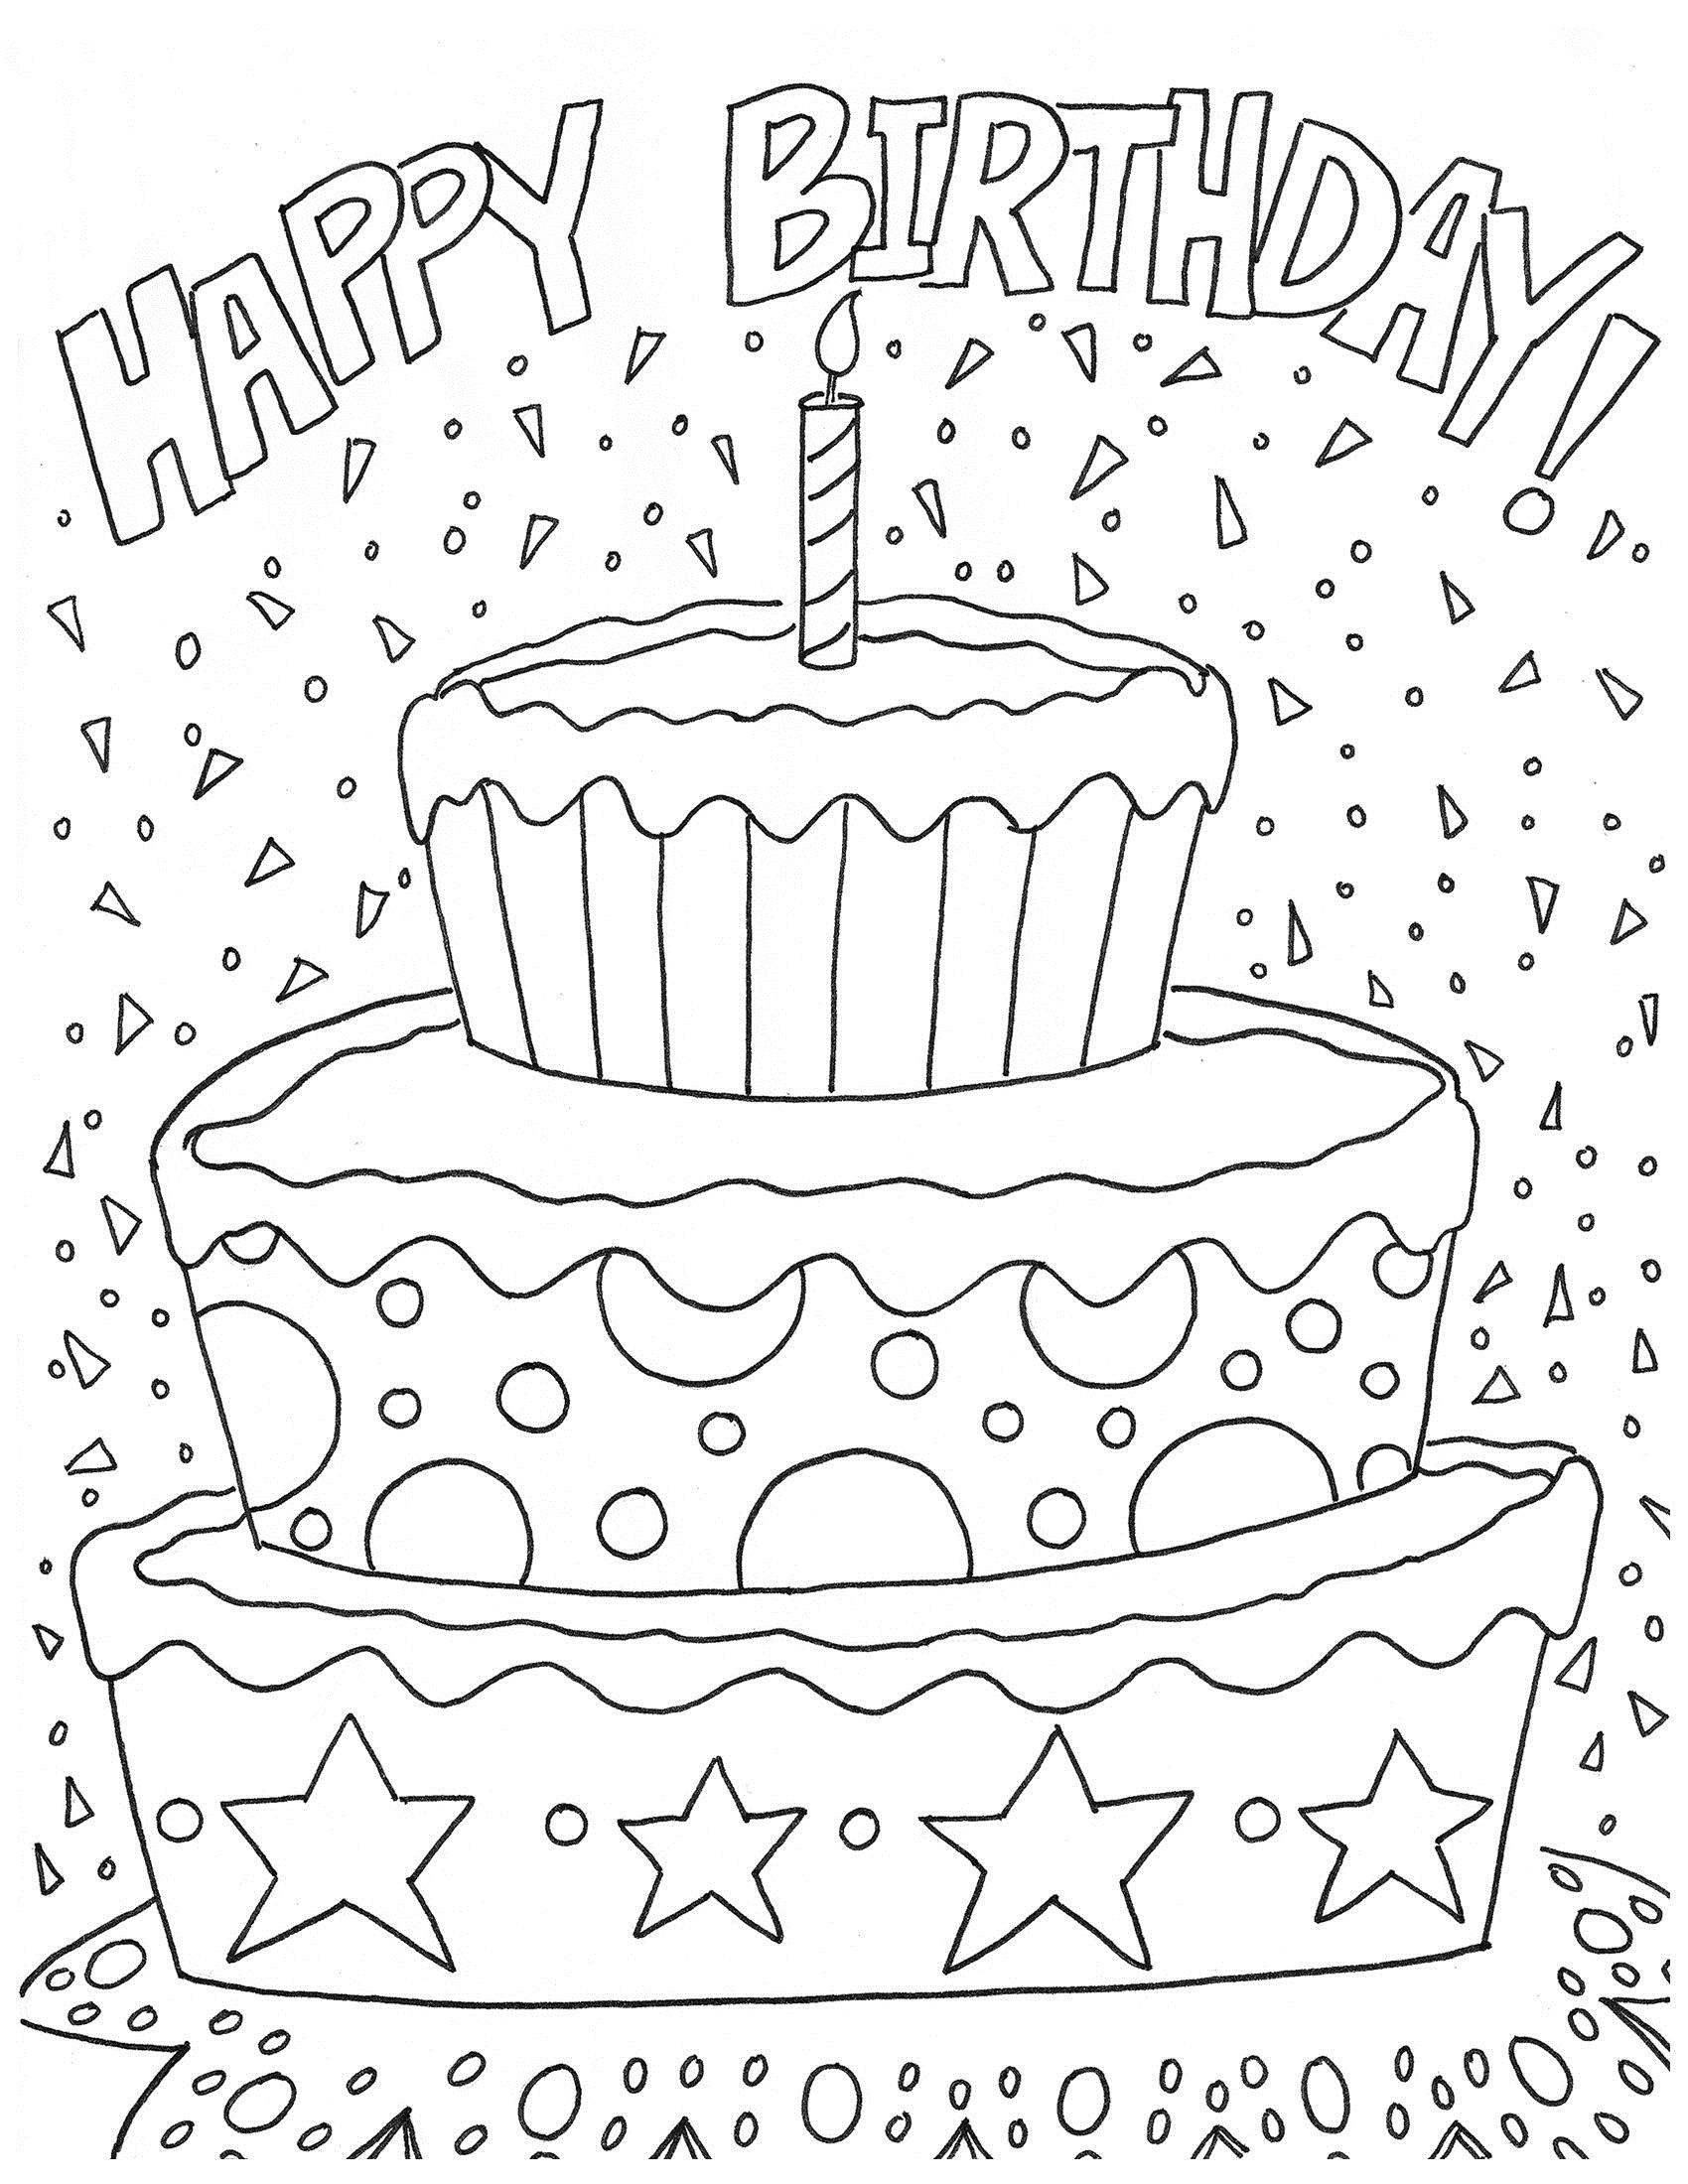 coloring book happy birthday ; Printable-Free-Happy-Birthday-Coloring-Pages-79-In-Free-Coloring-Book-with-Free-Happy-Birthday-Coloring-Pages